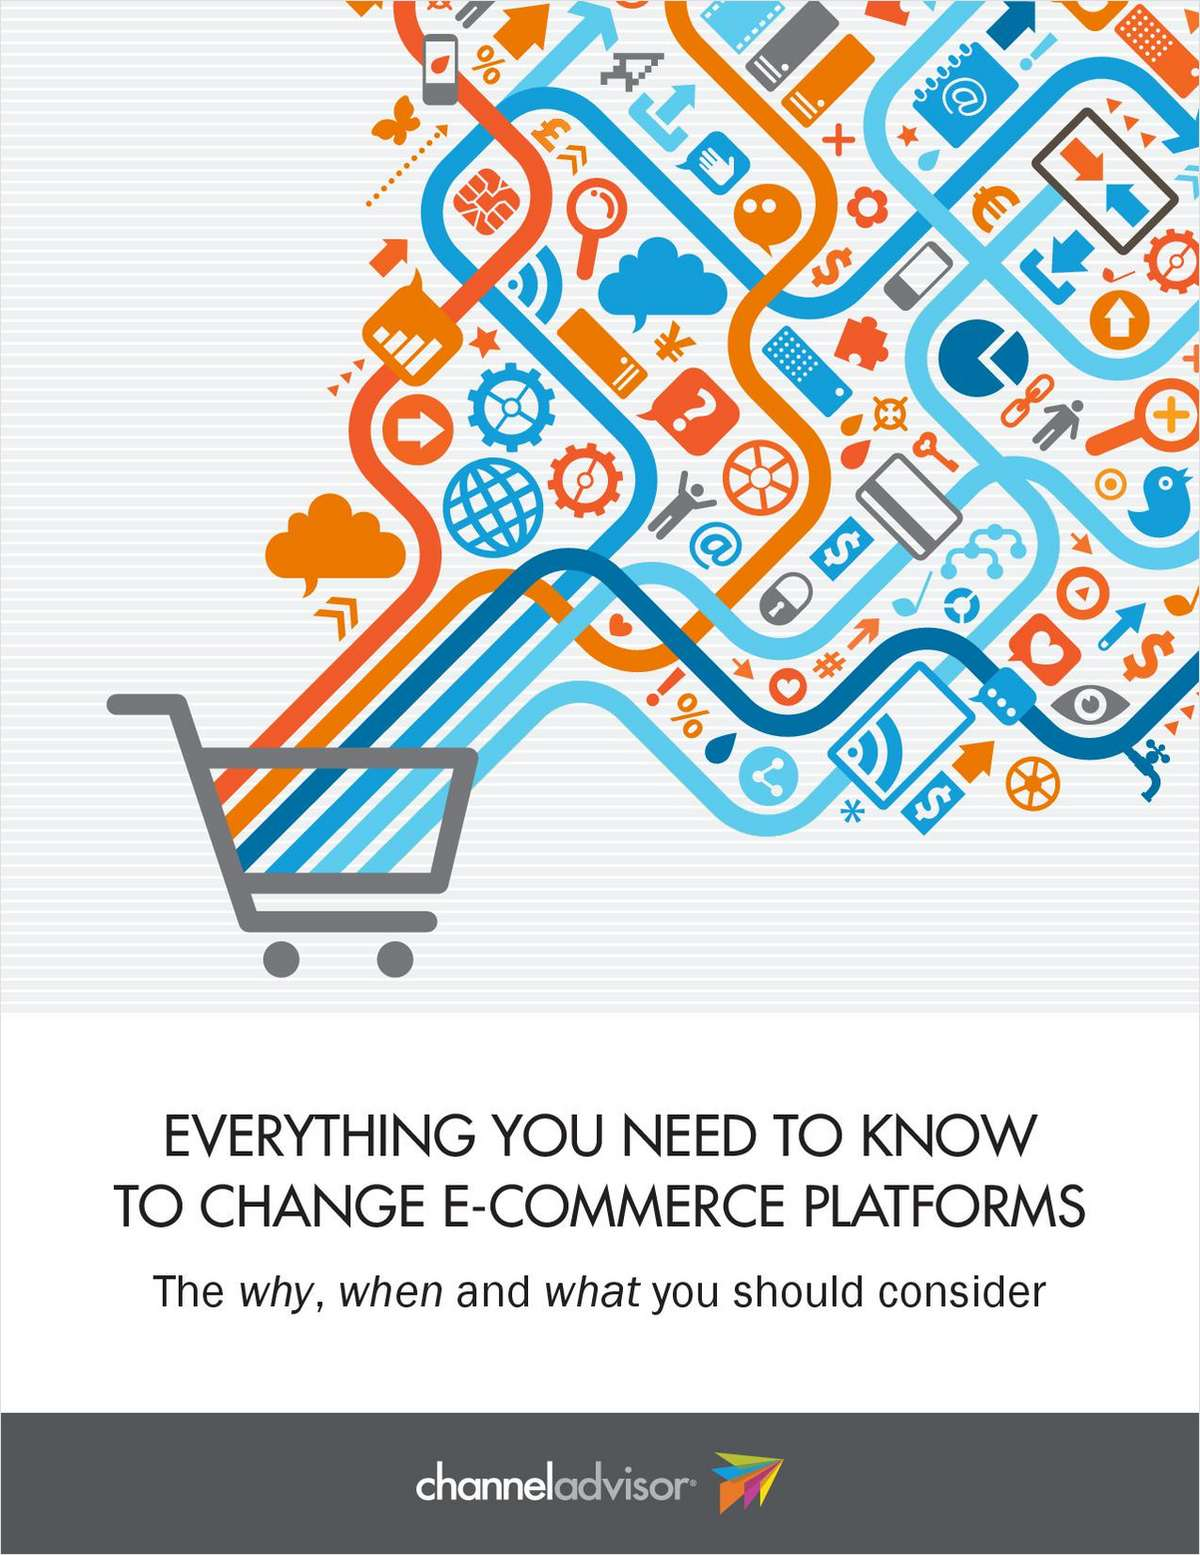 Everything You Need to Know to Change E-Commerce Platforms